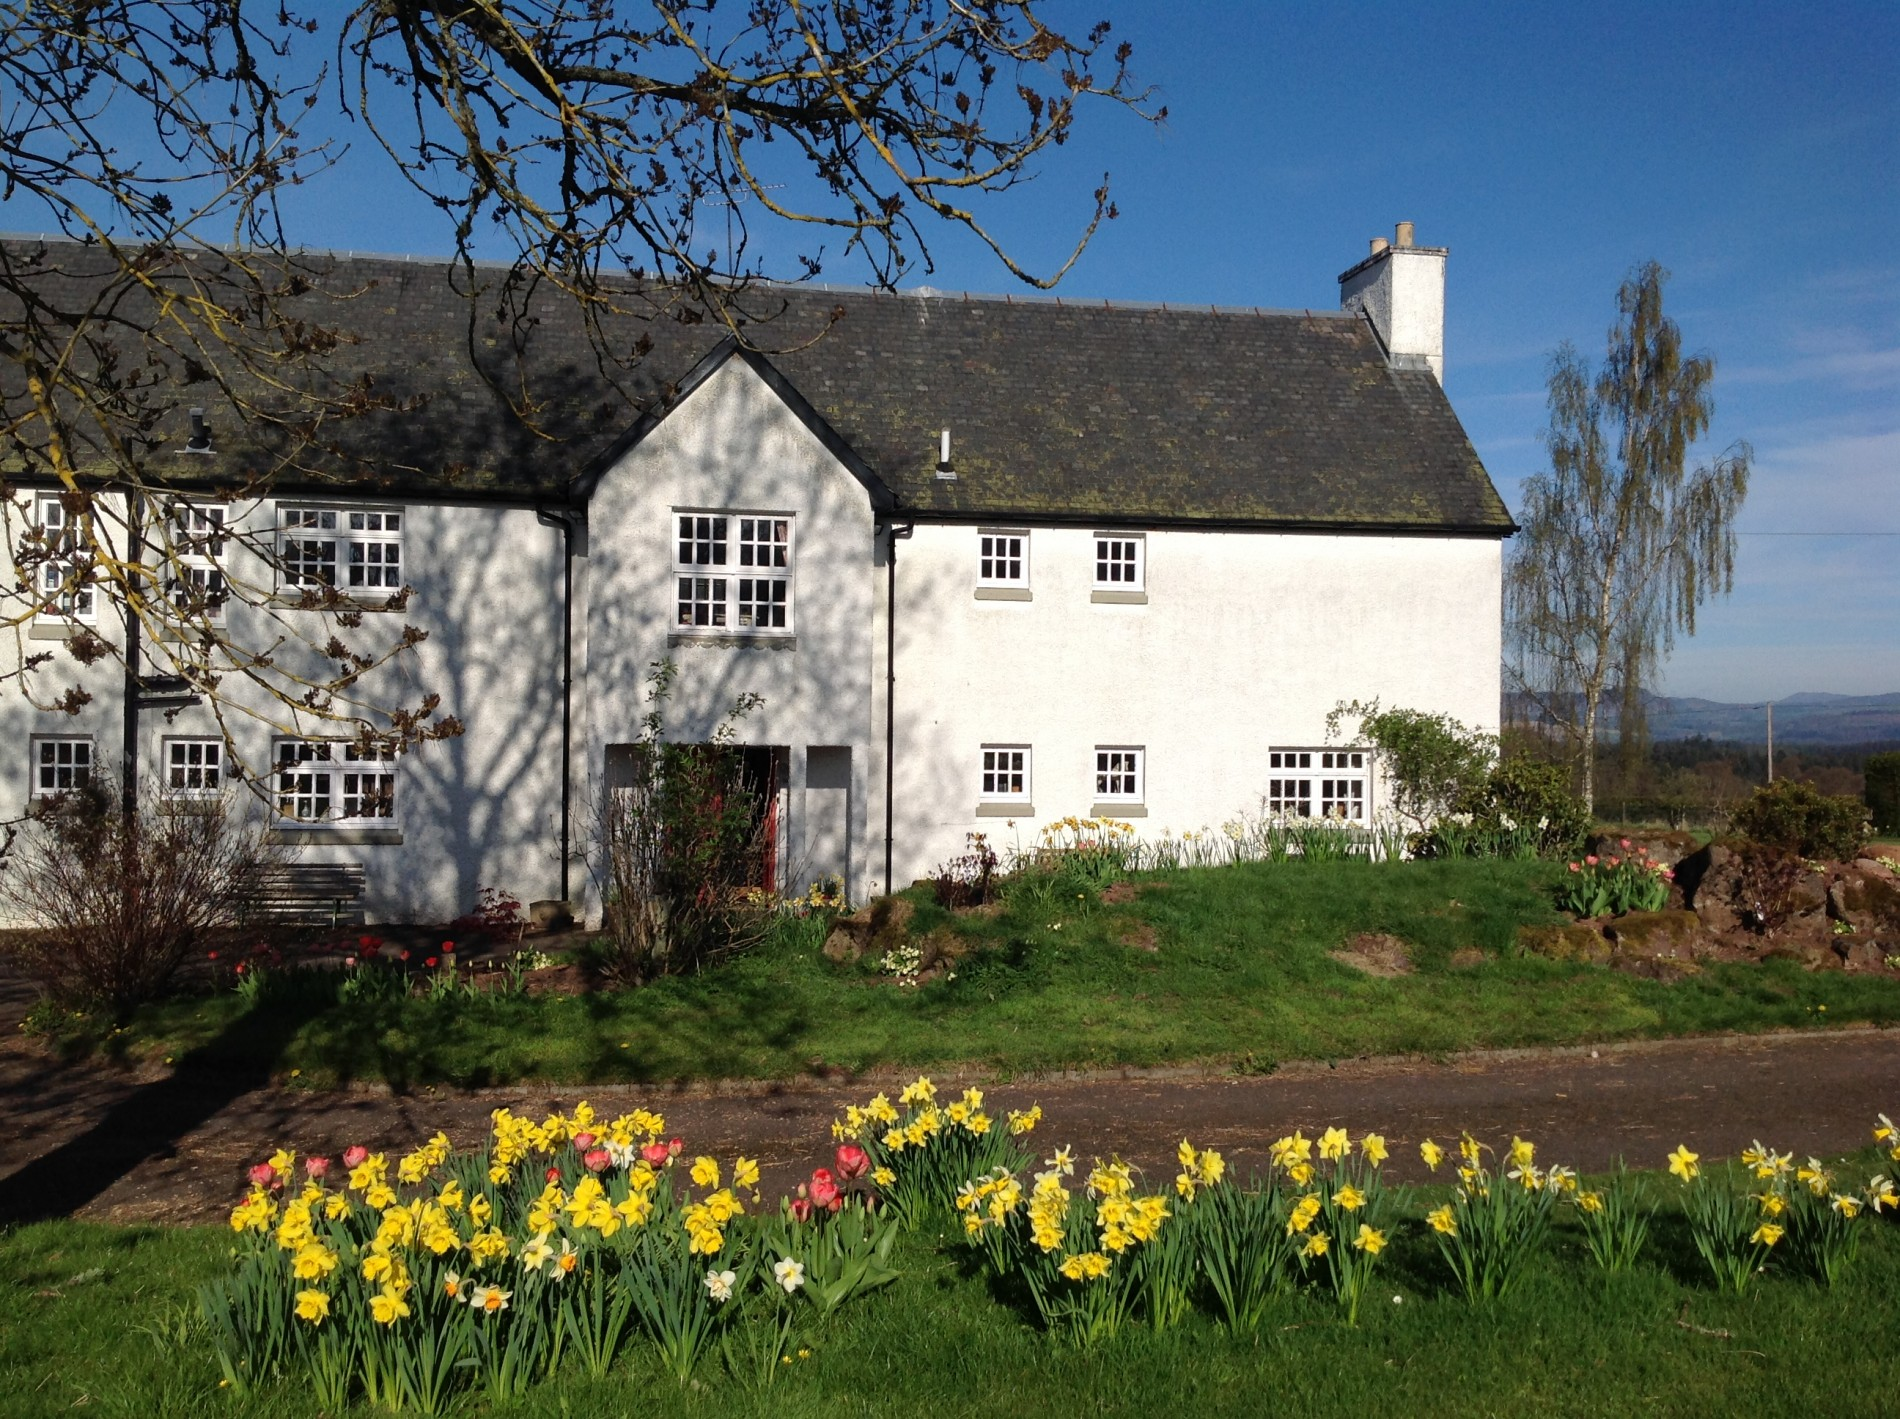 Park House bed and breakfast enjoying the spring sunshine as it warms the Perthshire mountains